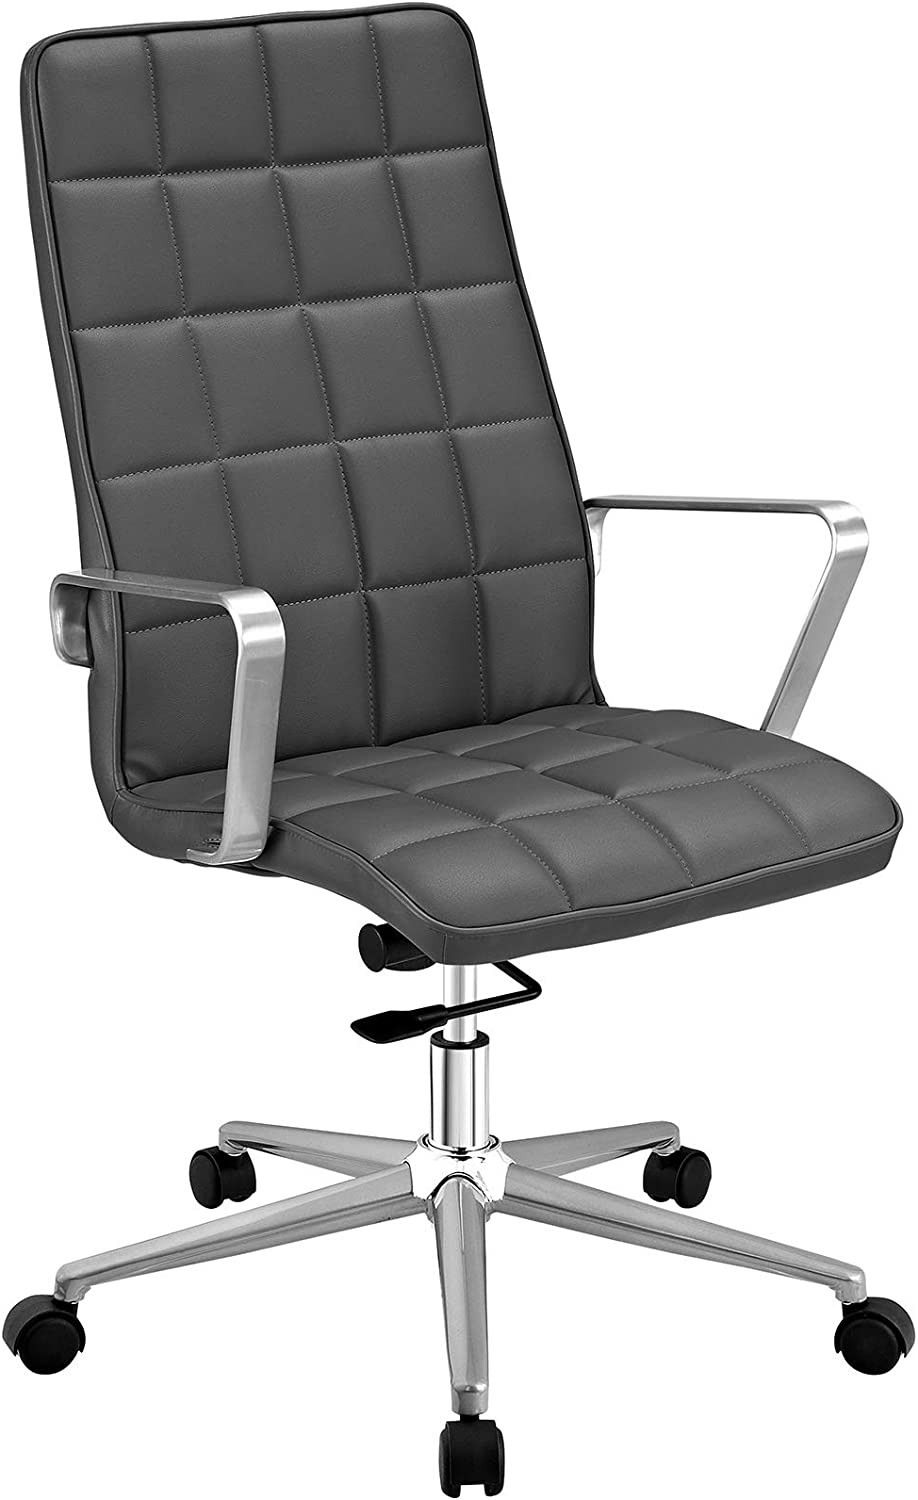 Modway Tile Square Stitched Faux Leather High-Back Office Chair in Gray